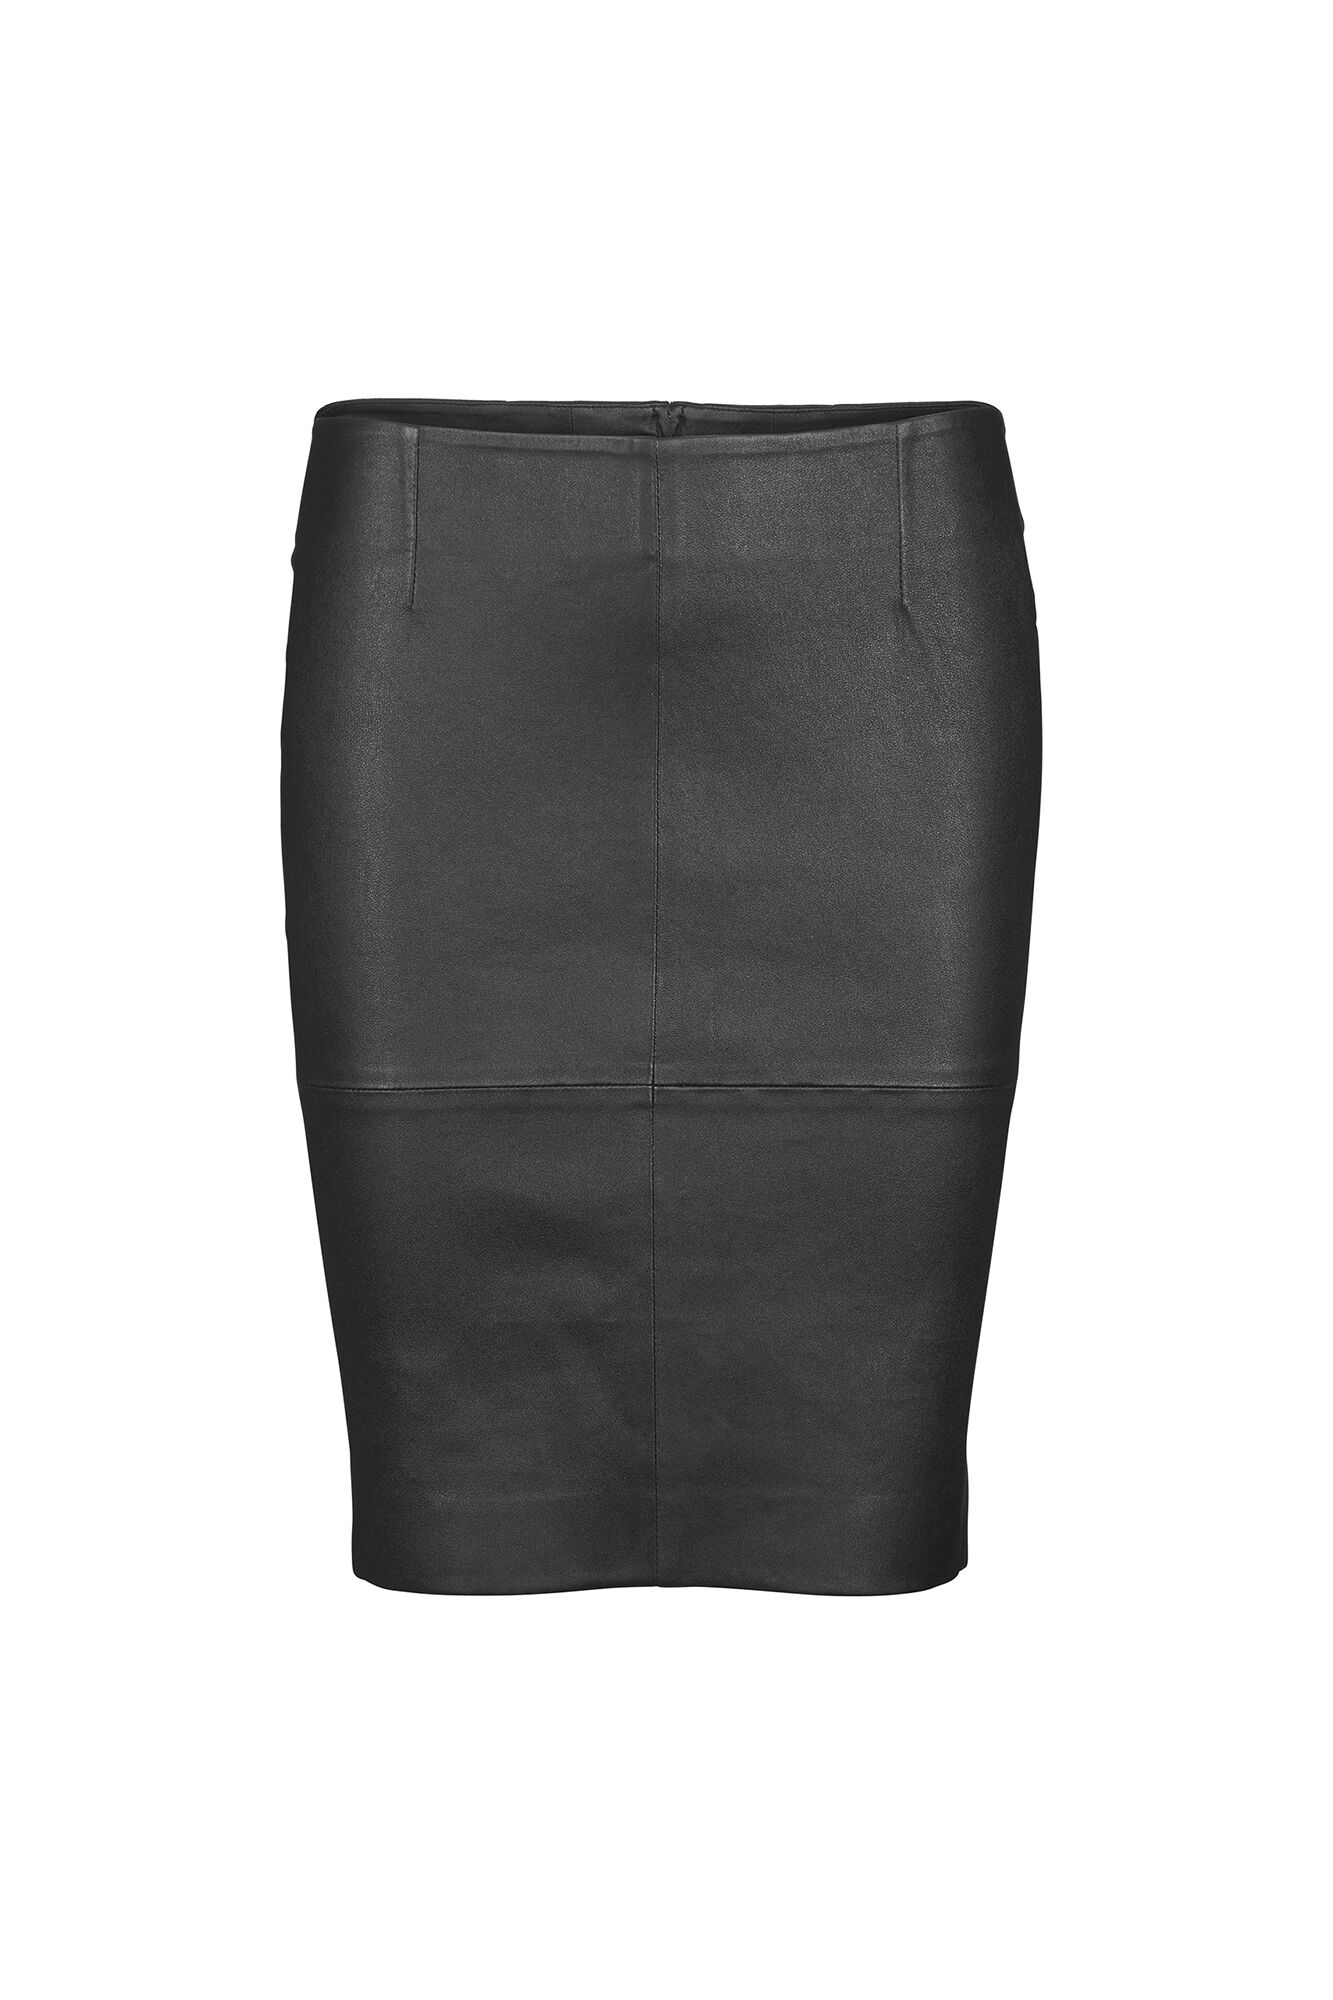 ENLEON LONG SKIRT 6401, BLACK